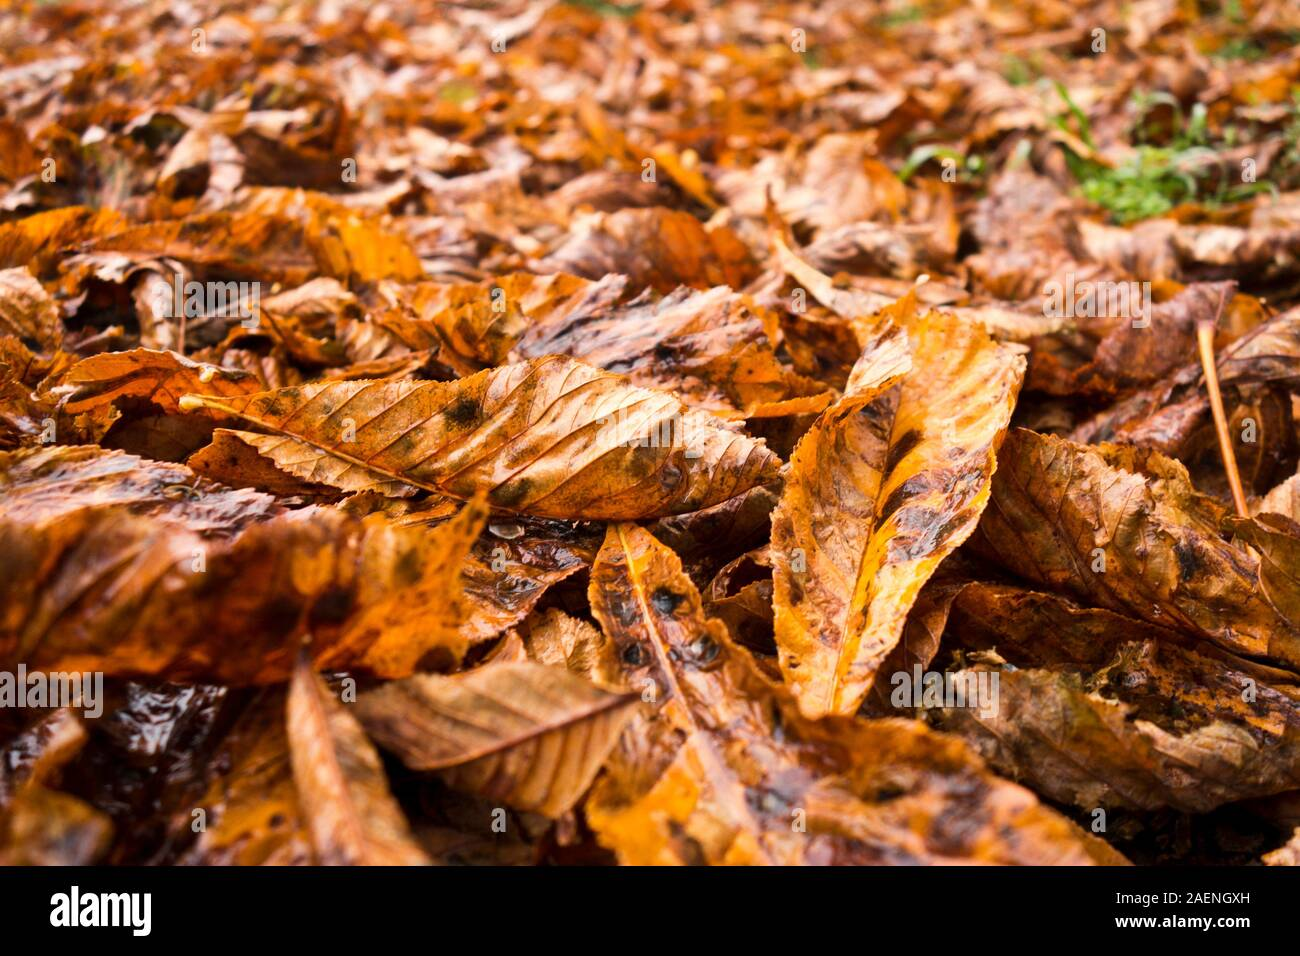 background of autumn leaves covering the ground Stock Photo